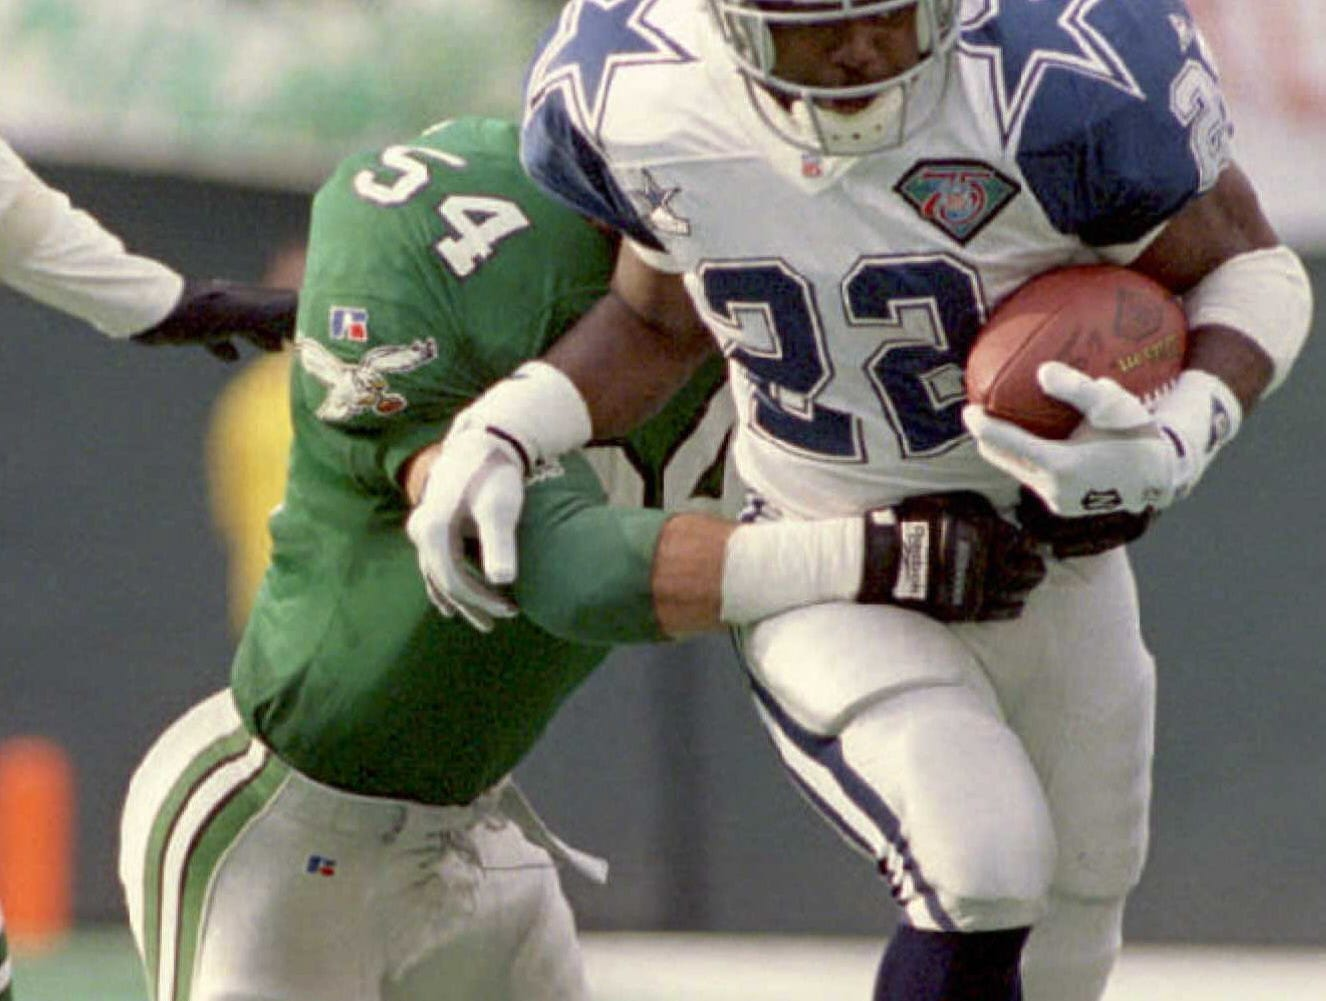 PHILADELPHIA, PA - DECEMBER 4:  Dallas Cowboys running back Emmitt Smith breaks away Philadelphia Eagles Britt Hager during the second quarter at Philadelphia's Veterans Stadium 04 December. Smith carried the ball 25 times for 91 yards and scored two touchdowns to help his team to a 31-19 victory. (COLOR KEY: Turf green)  (Photo credit should read TIMOTHY CLARY/AFP/Getty Images)